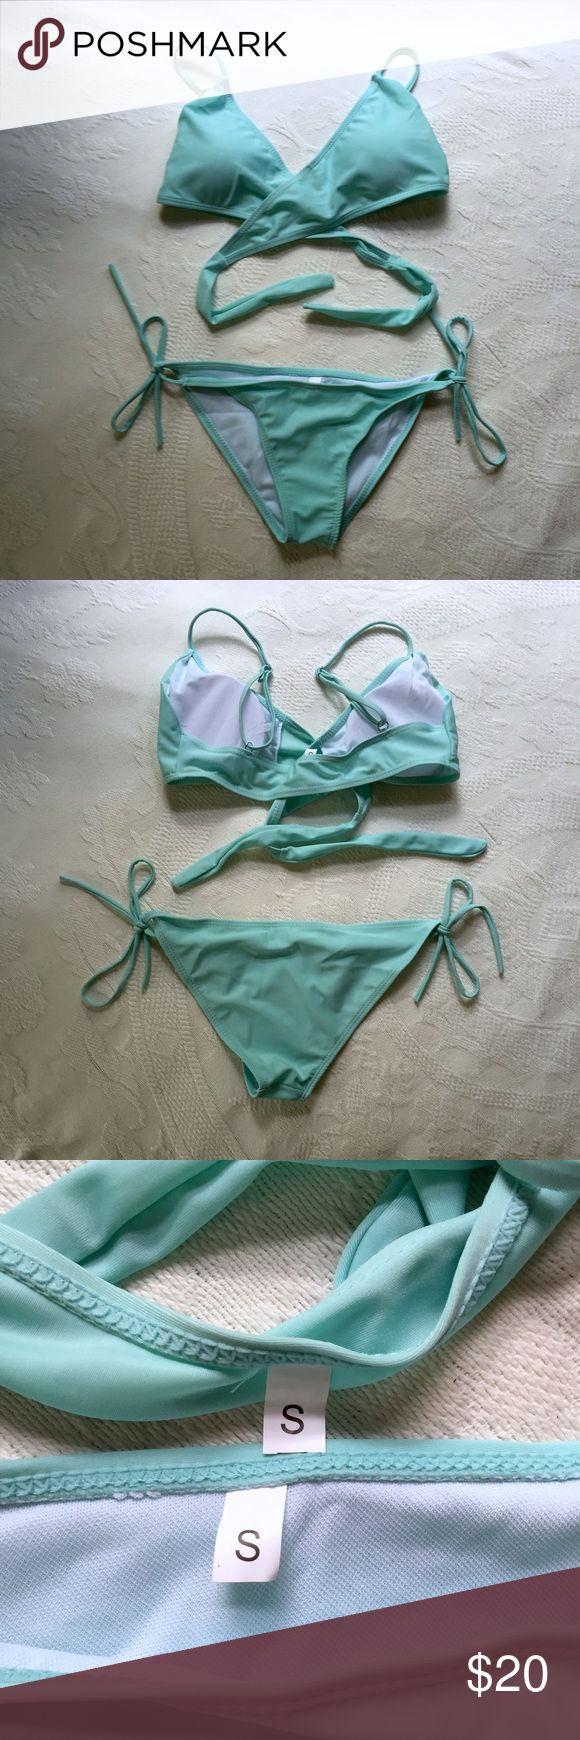 Mint Criss Cross Bikini Mint bikini, ties criss crossed under bust. Top is padded with adjustable straps. Never worn. Listed for views. PINK Victoria's Secret Swim Bikinis